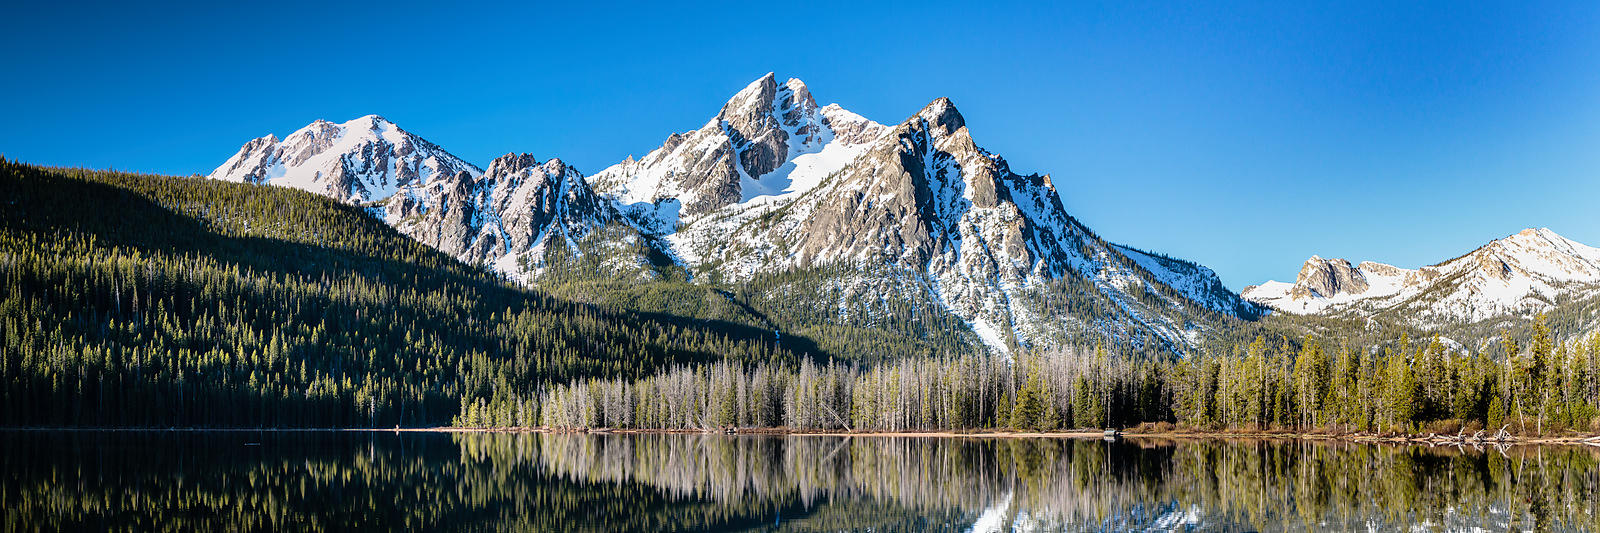 OwenRothPhotography-FullTIFF-May_14_2018-Sawtooth_National_Recreation_Area-7467-Pano